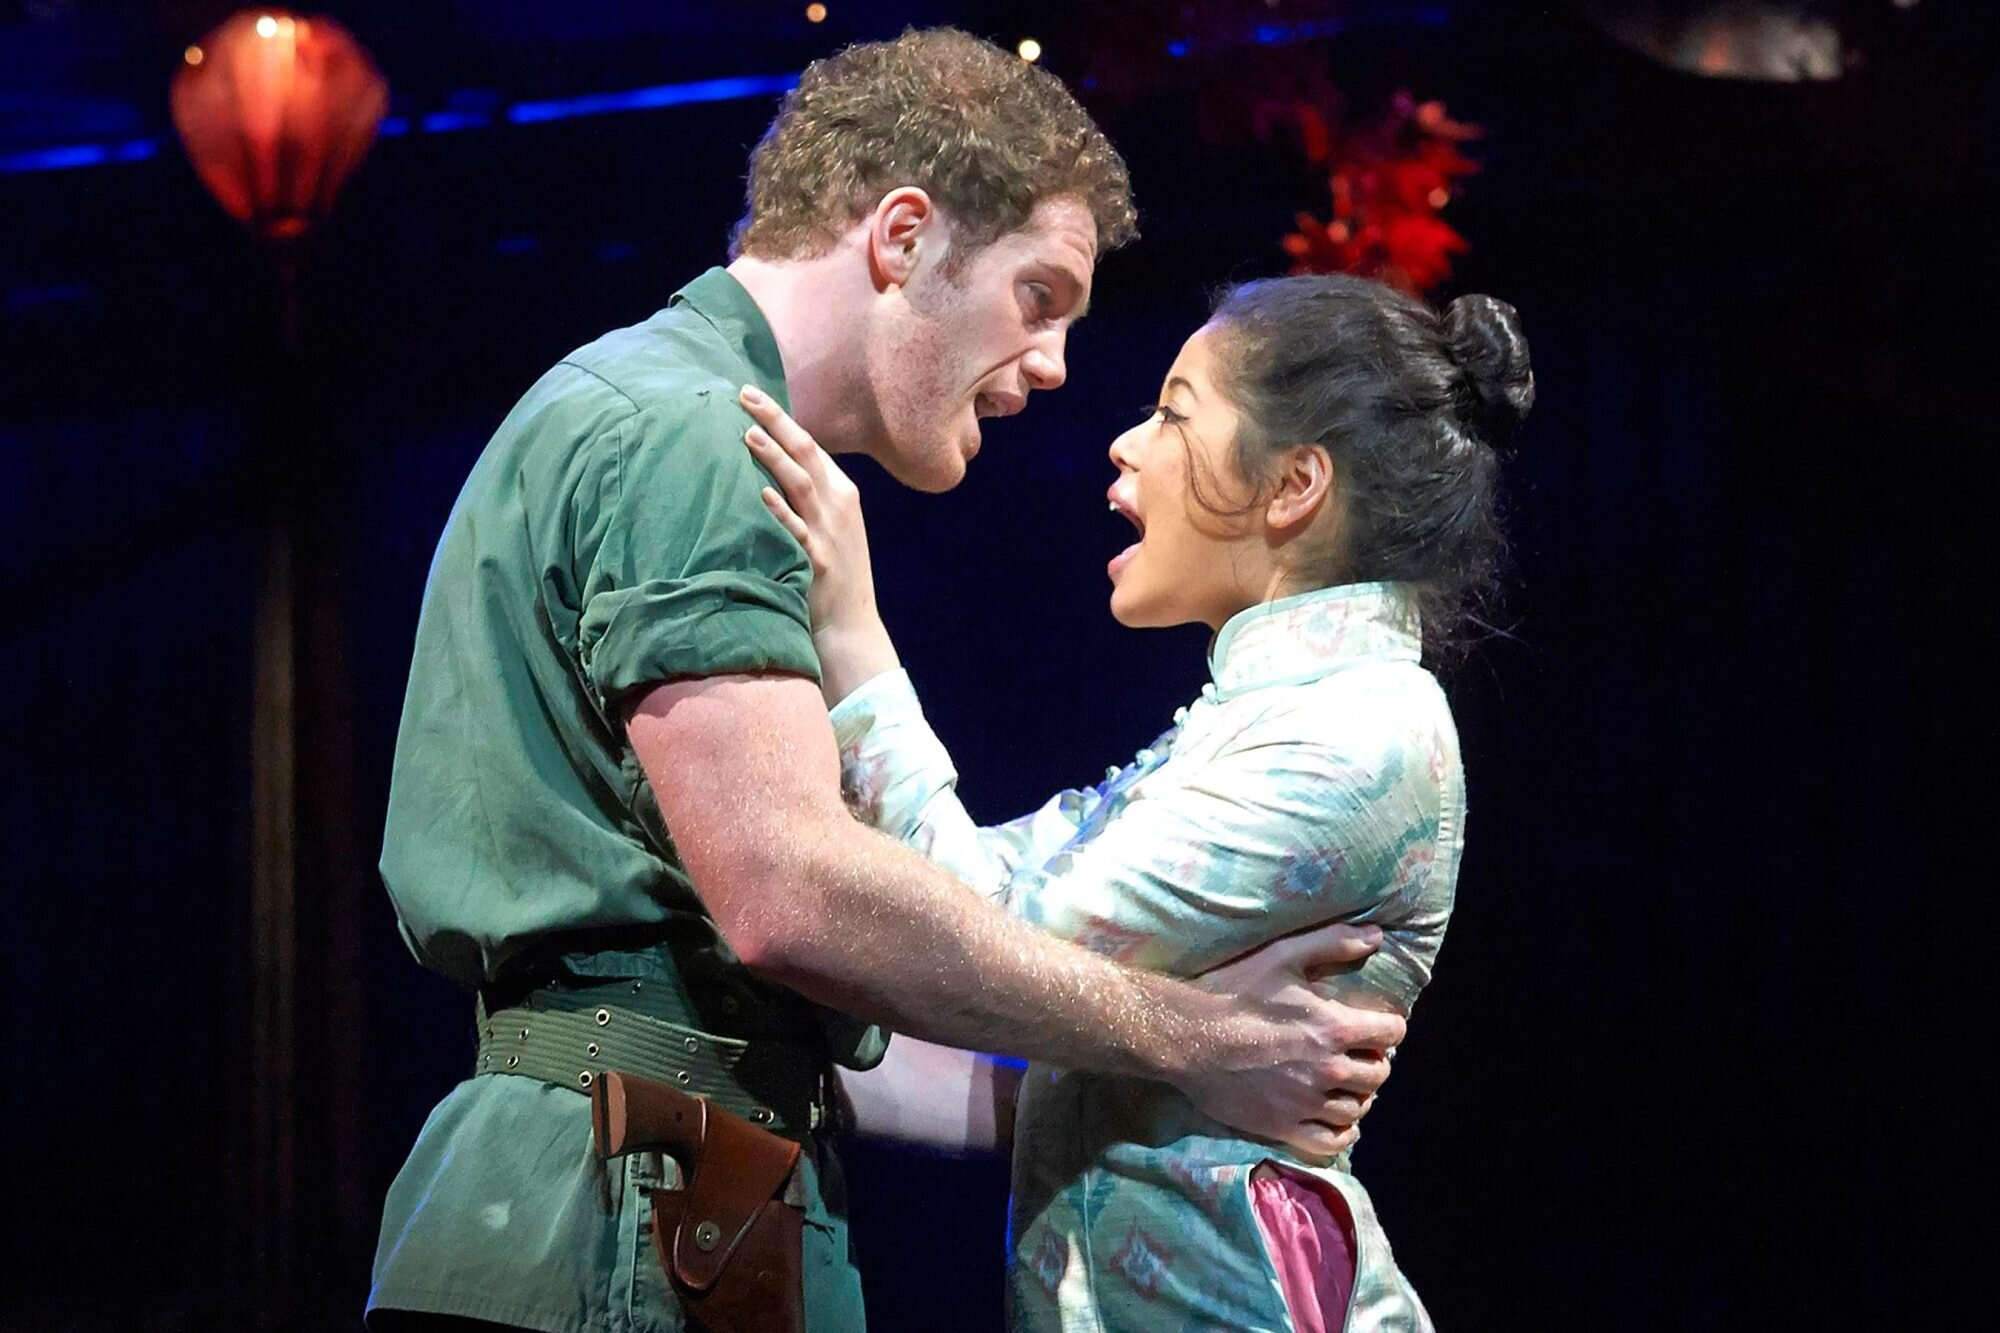 """A shot from the Broadway musical """"Miss Saigon"""". A man in an army uniform holds a Vietnamese woman in his arms. Both are singing."""